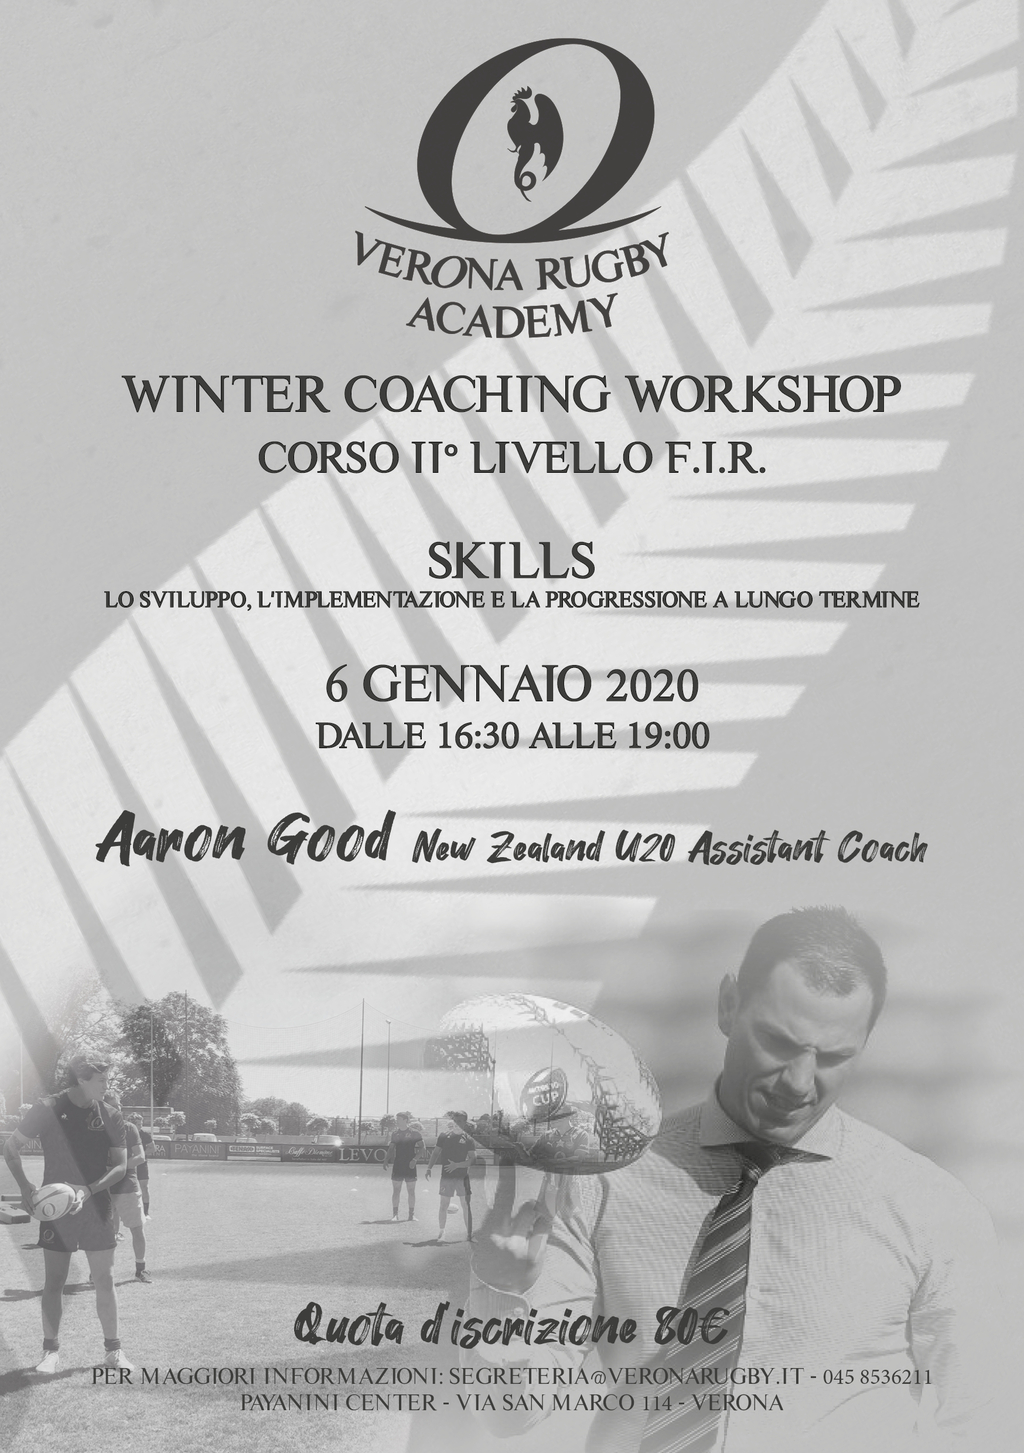 WinterCoachingWorkshop 2019 2